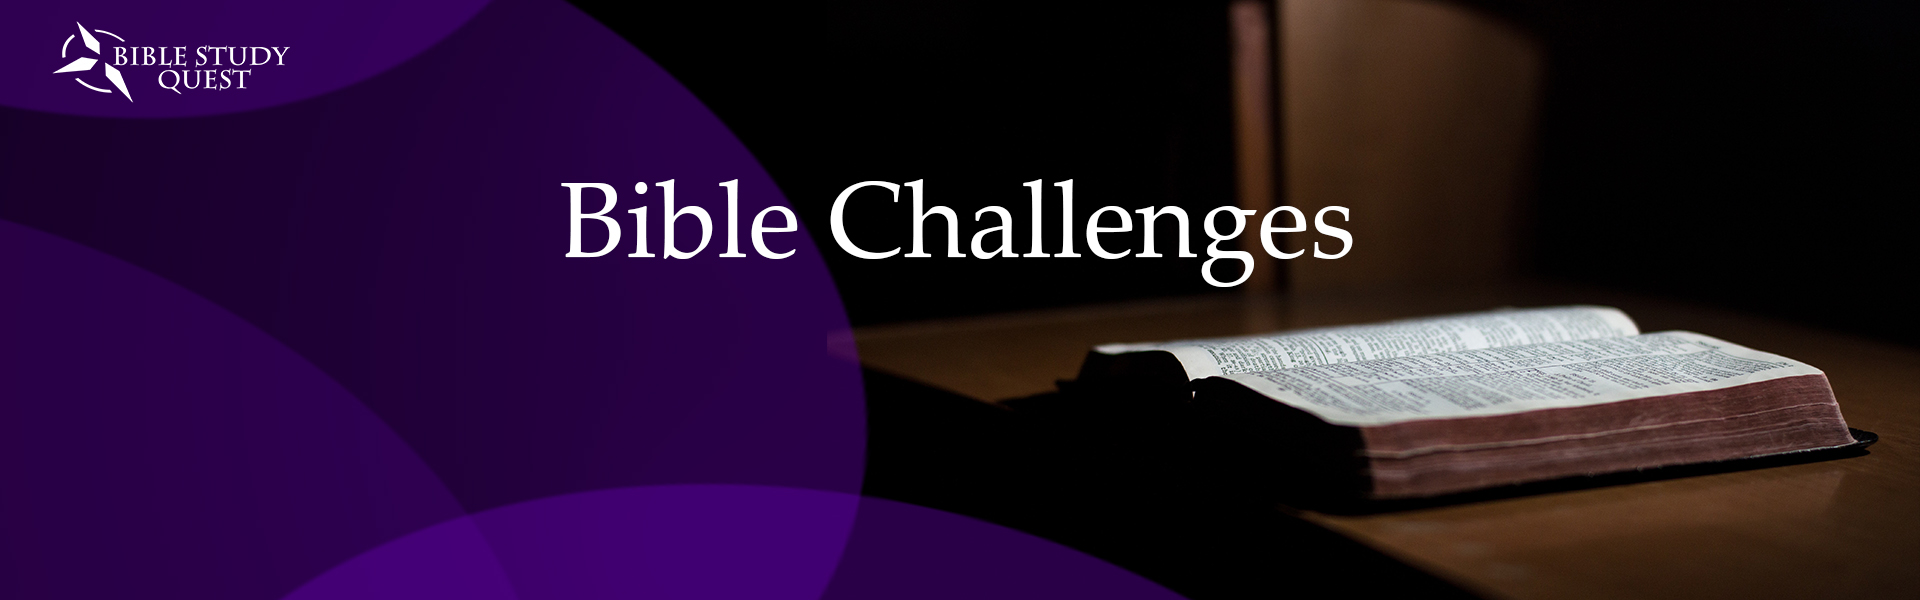 Bible Challenges with bible on desk and purple circles